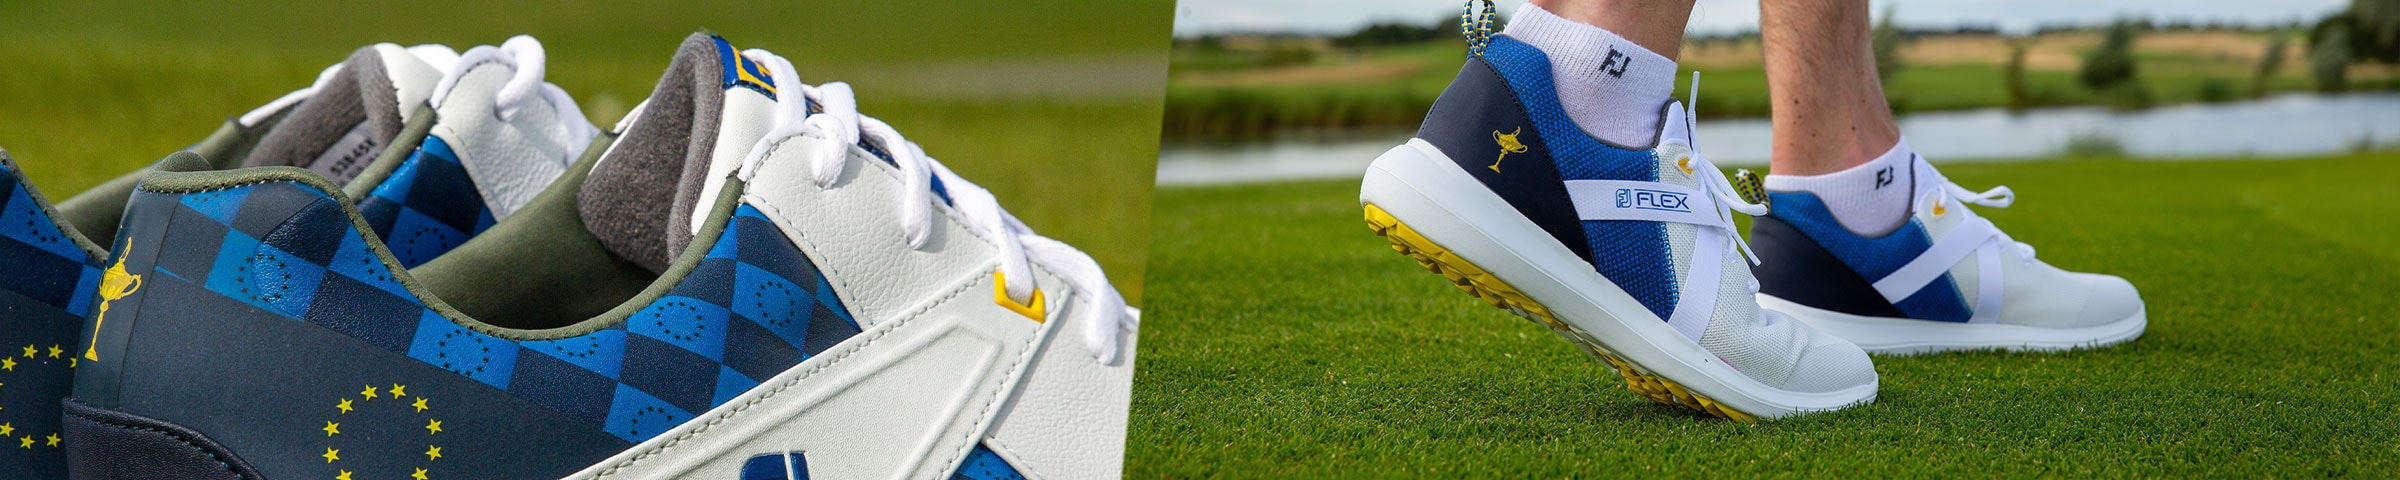 Ryder Cup Collection from FootJoy